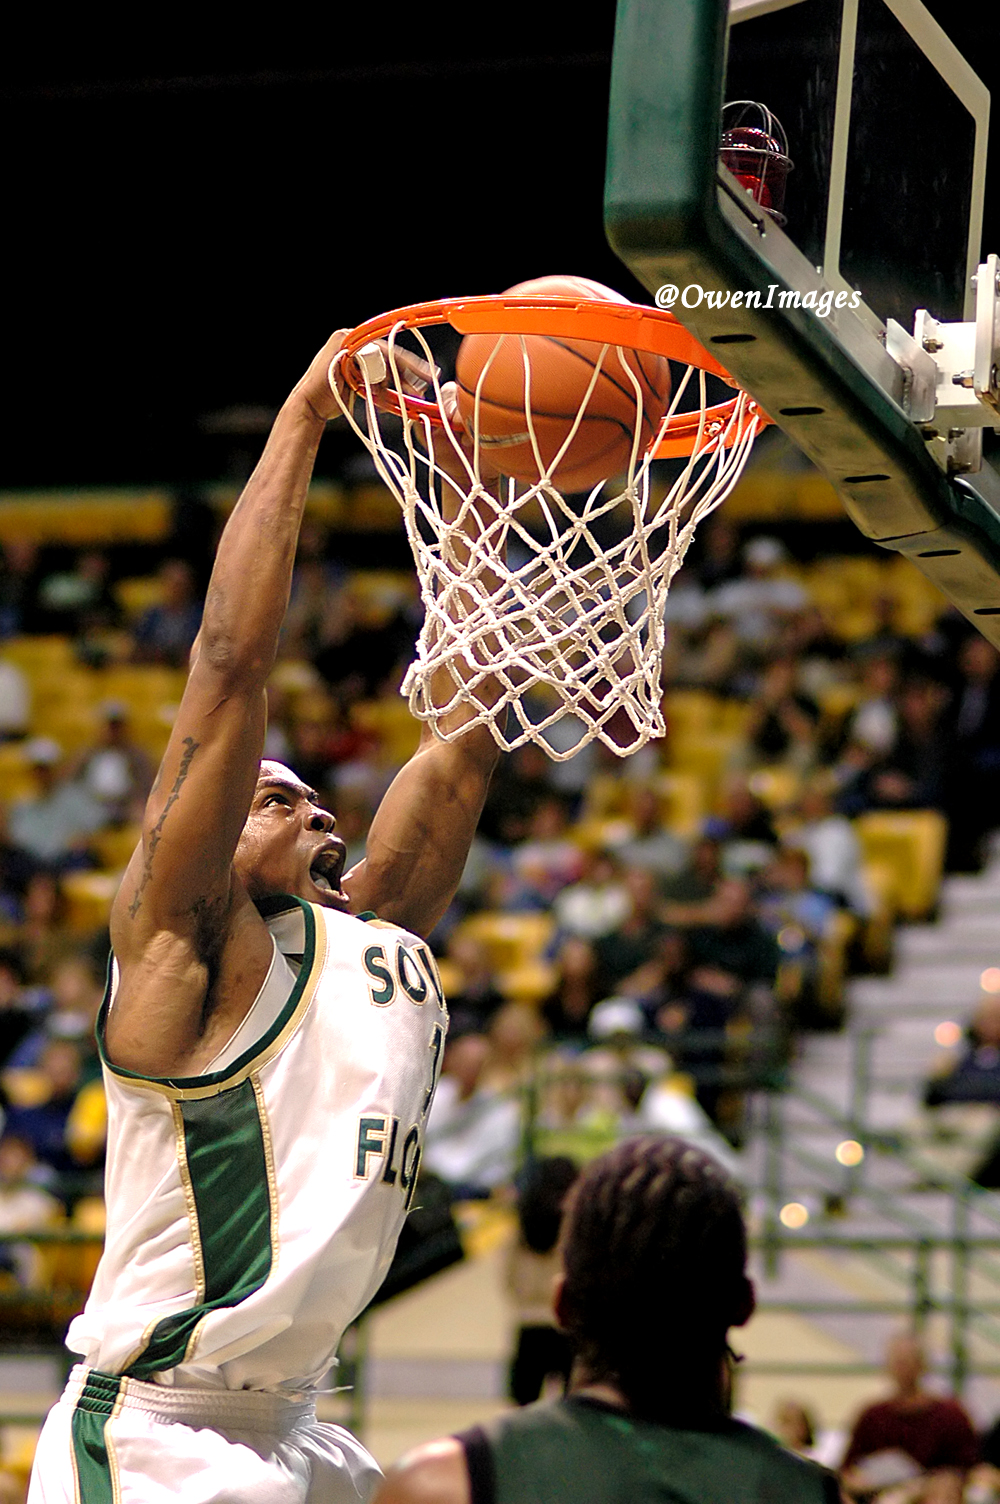 Photography Event Coverage of a USF Basketball Game